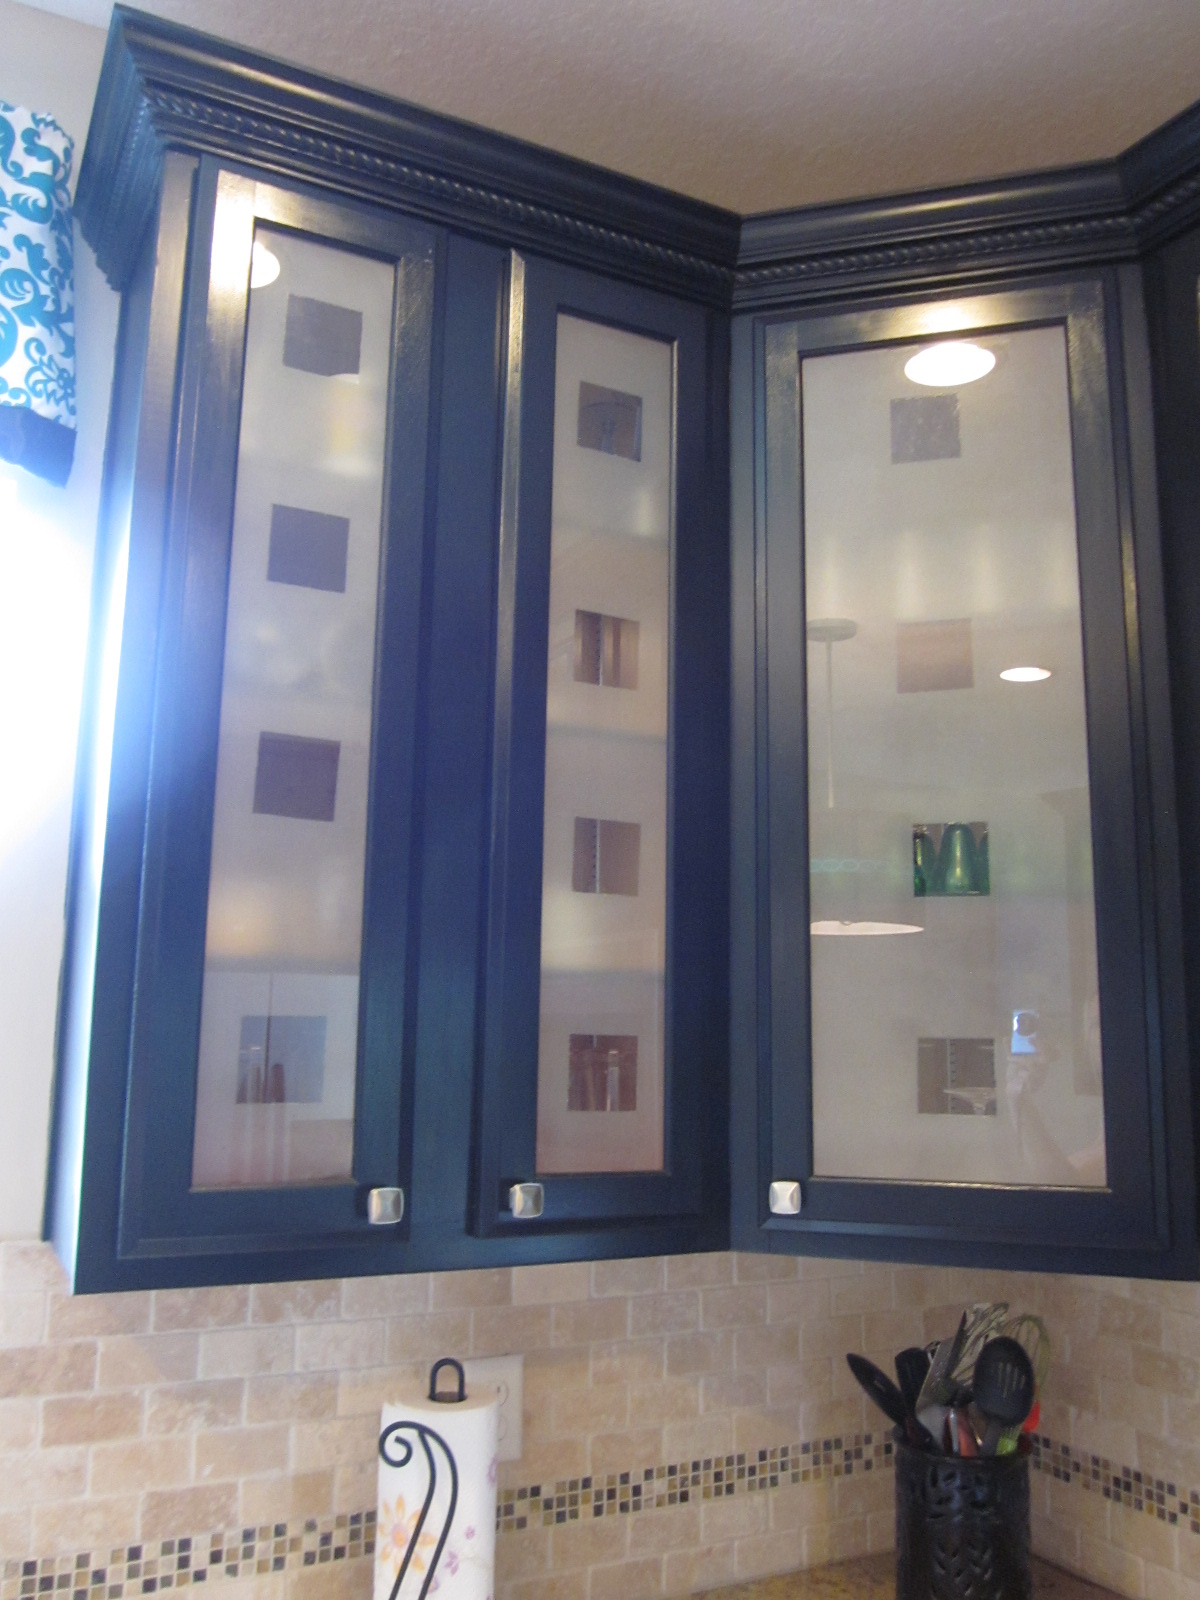 Kitchen cabinet doors with frosted glass - How To Frost Glass Cabinets